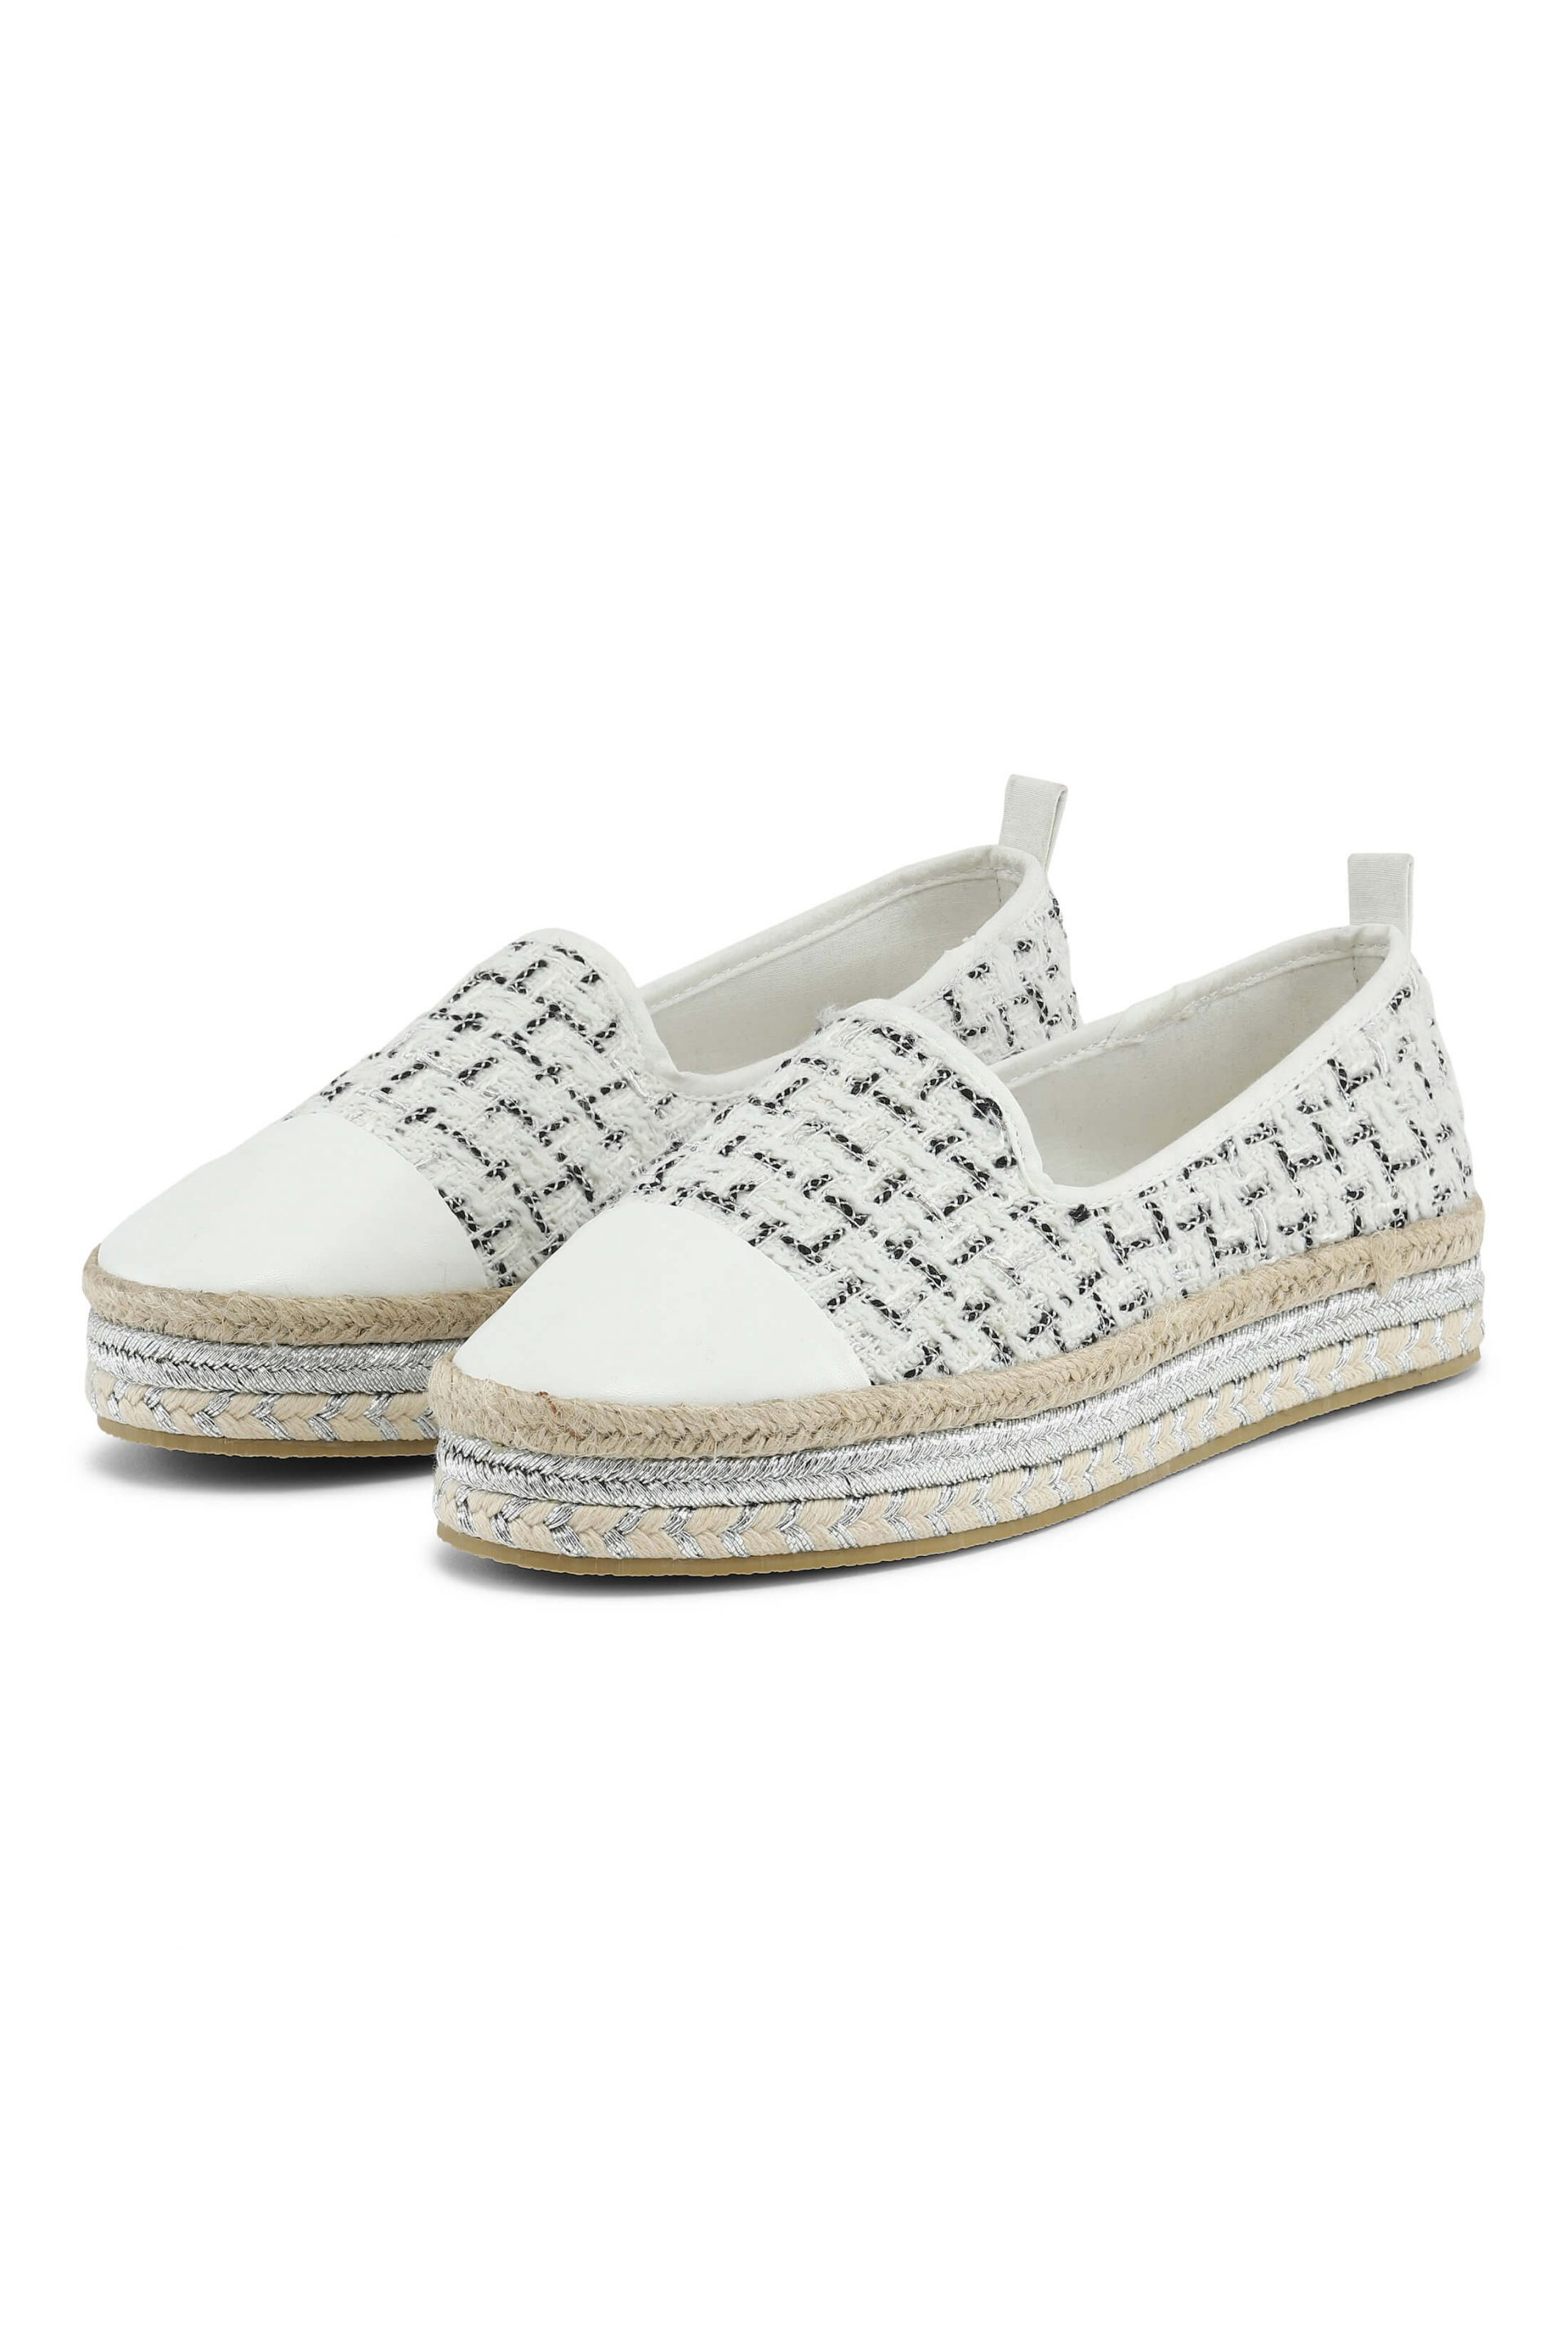 White quiltet espadrillos with silver details